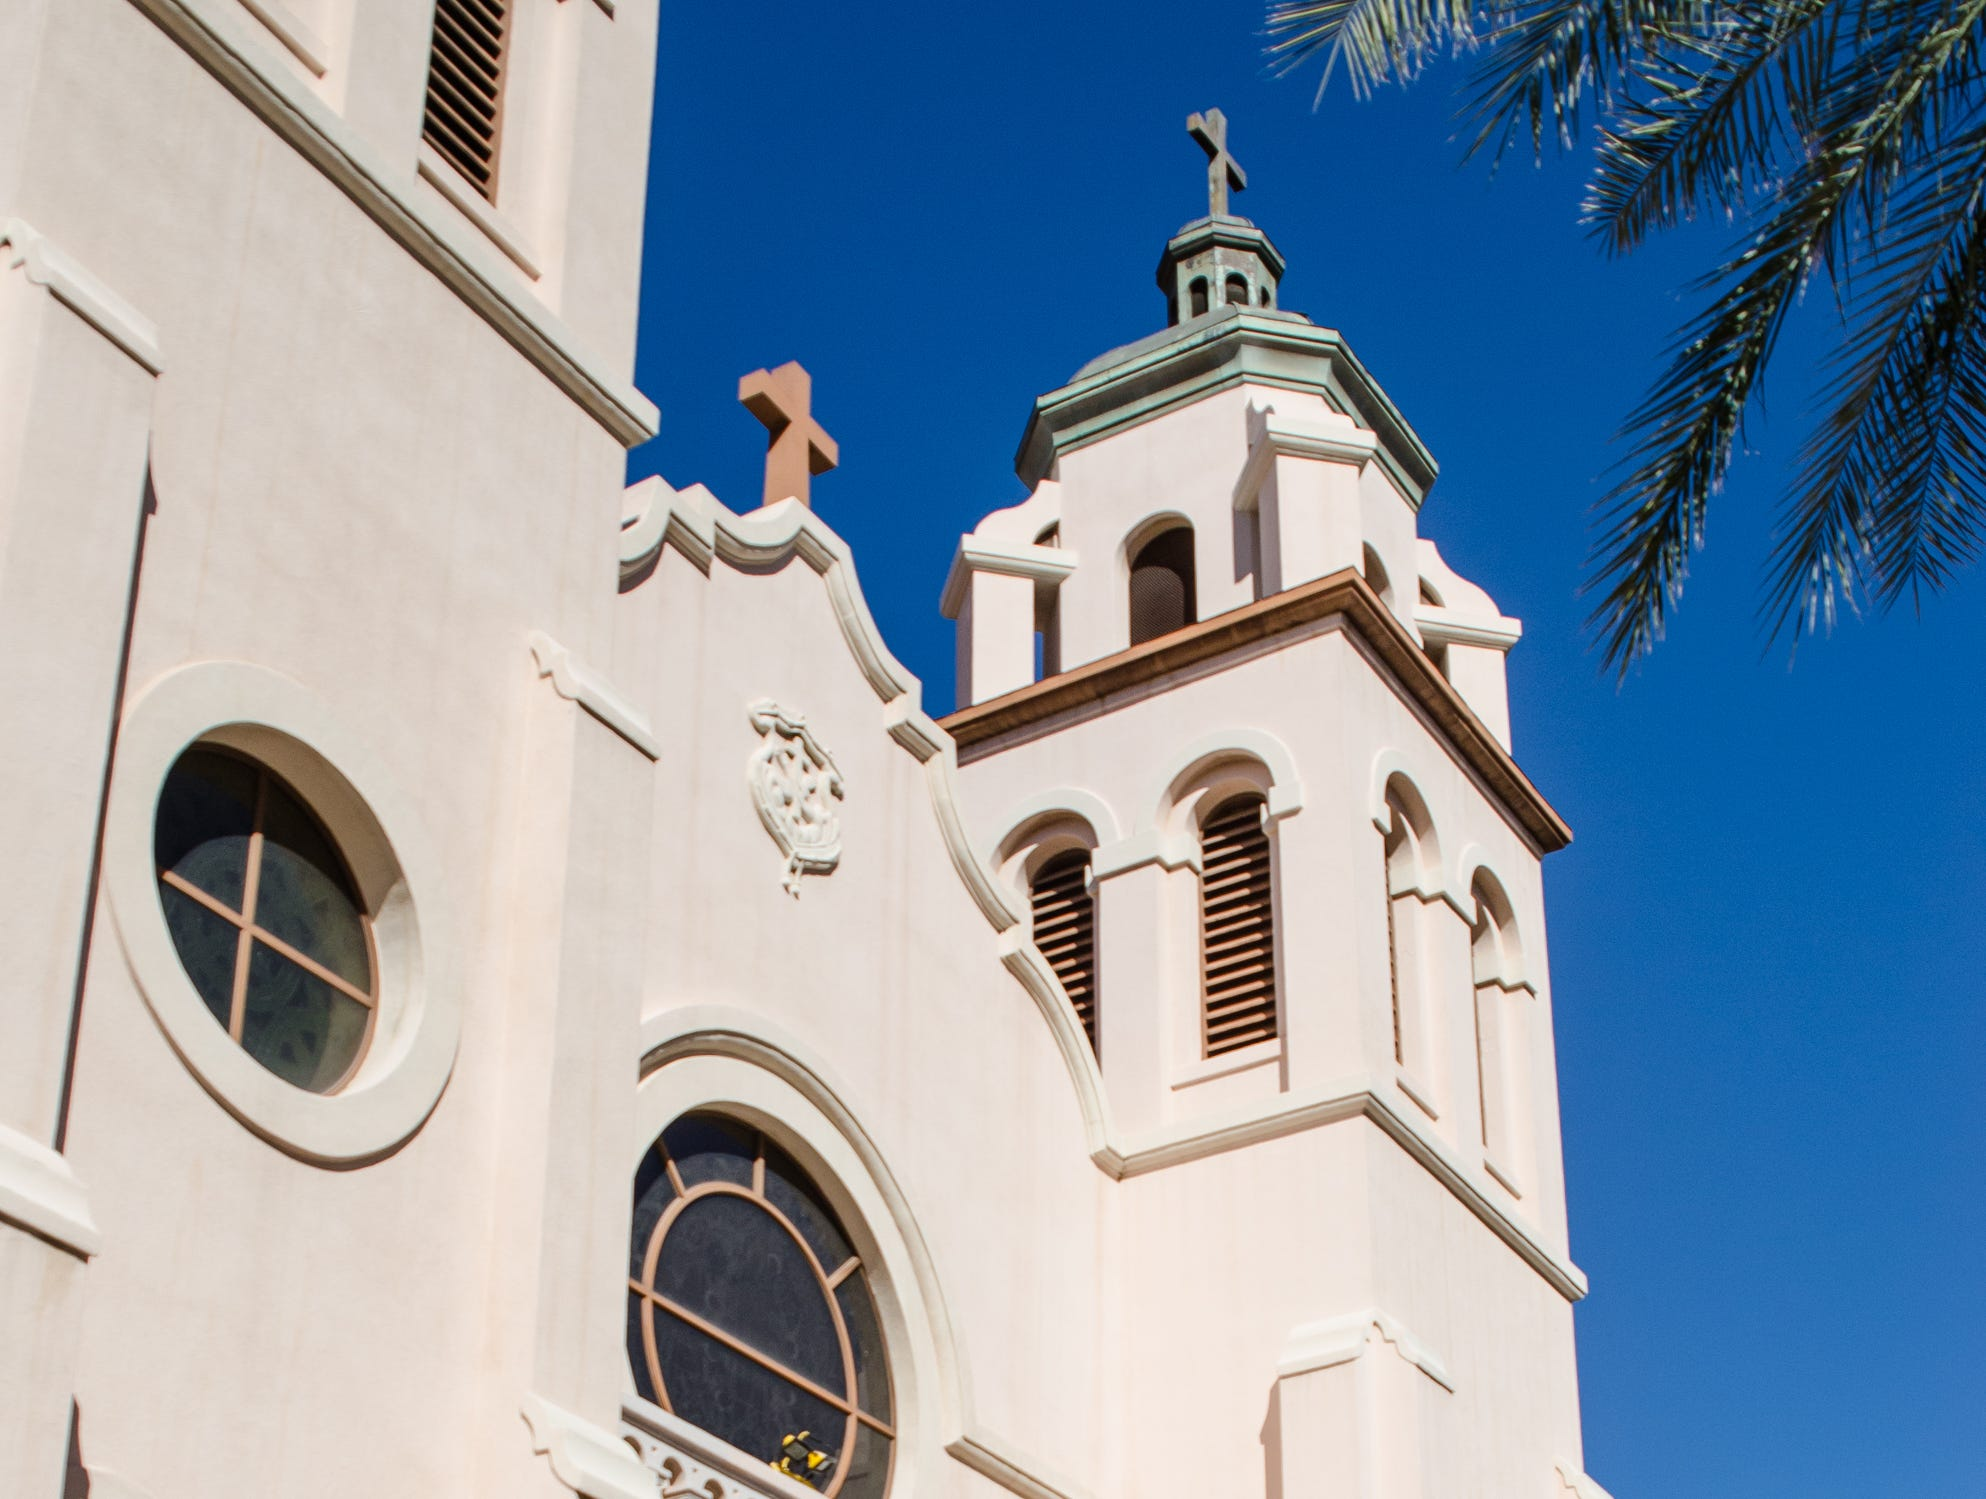 No. 43: Roman Catholic Diocese of Phoenix| Churches, schools, missions | 2019 employees: 4,316 | 2018 employees: 4,222 | Ownership: Non-profit | Headquarters: Phoenix | www.dphx.org